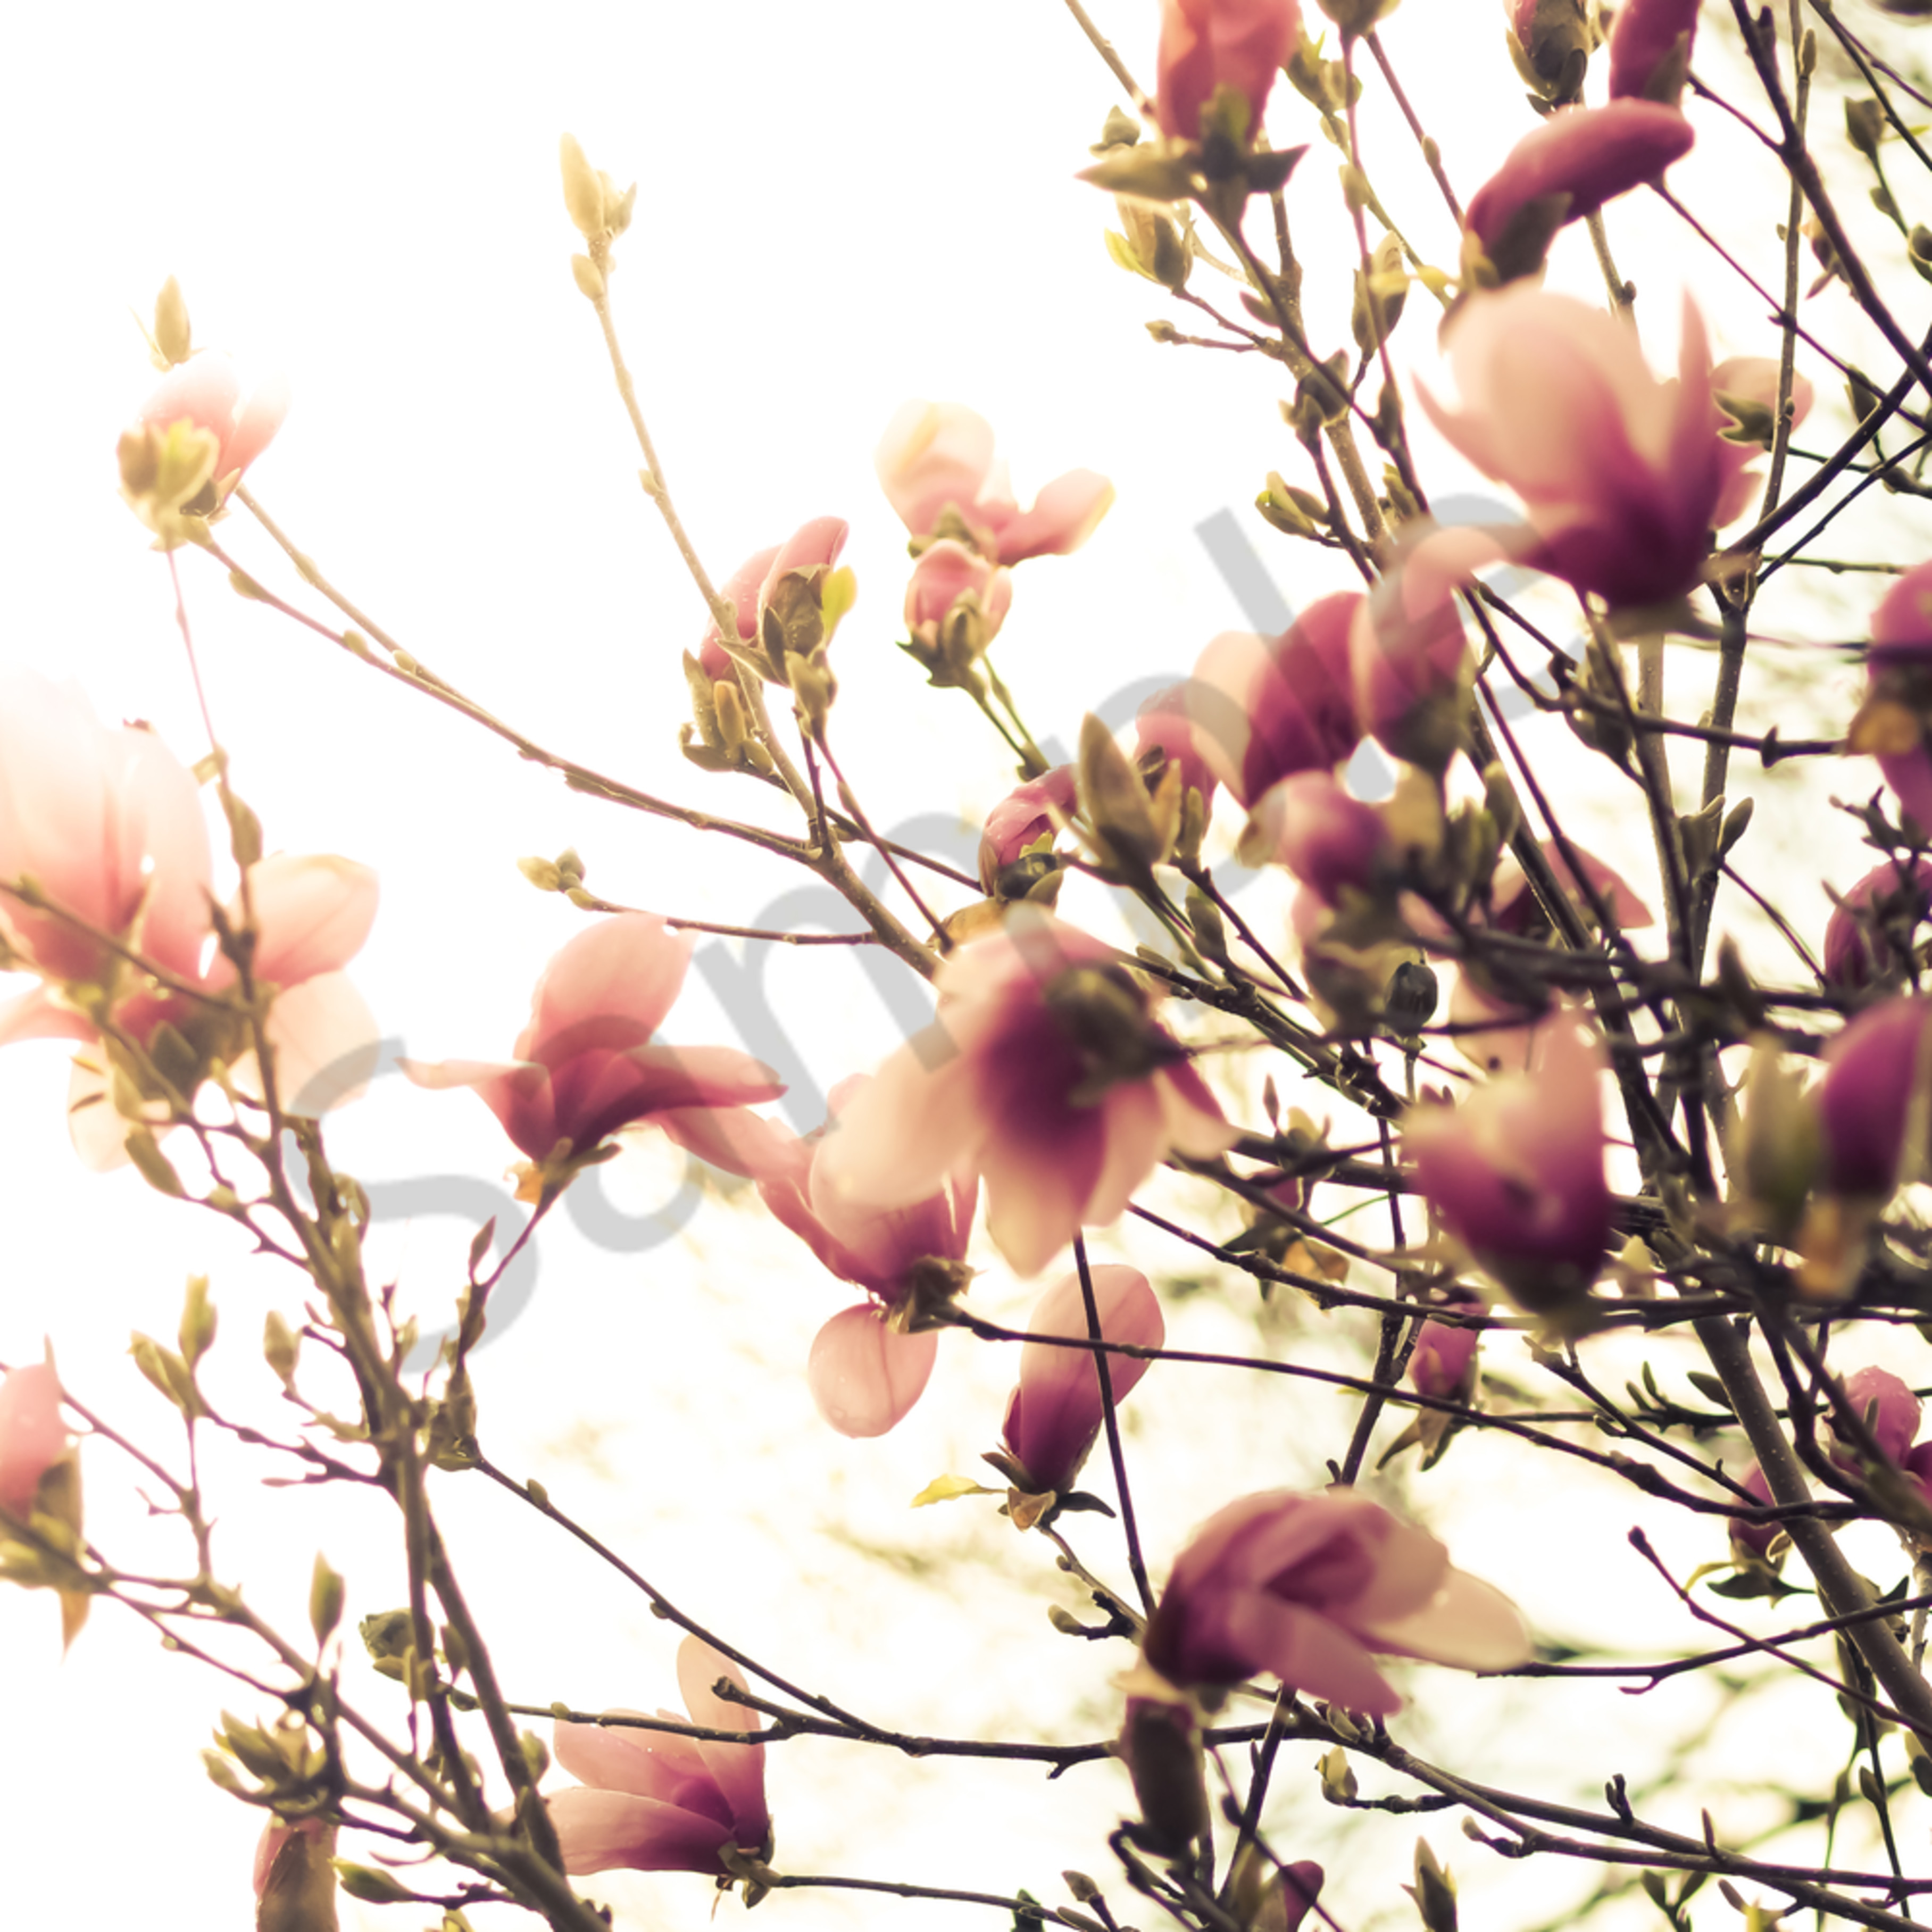 Floral Photograph Of Pink Blossoms On A Magnolia Tree In Spring For Sale As Fine Art By Sage Balm